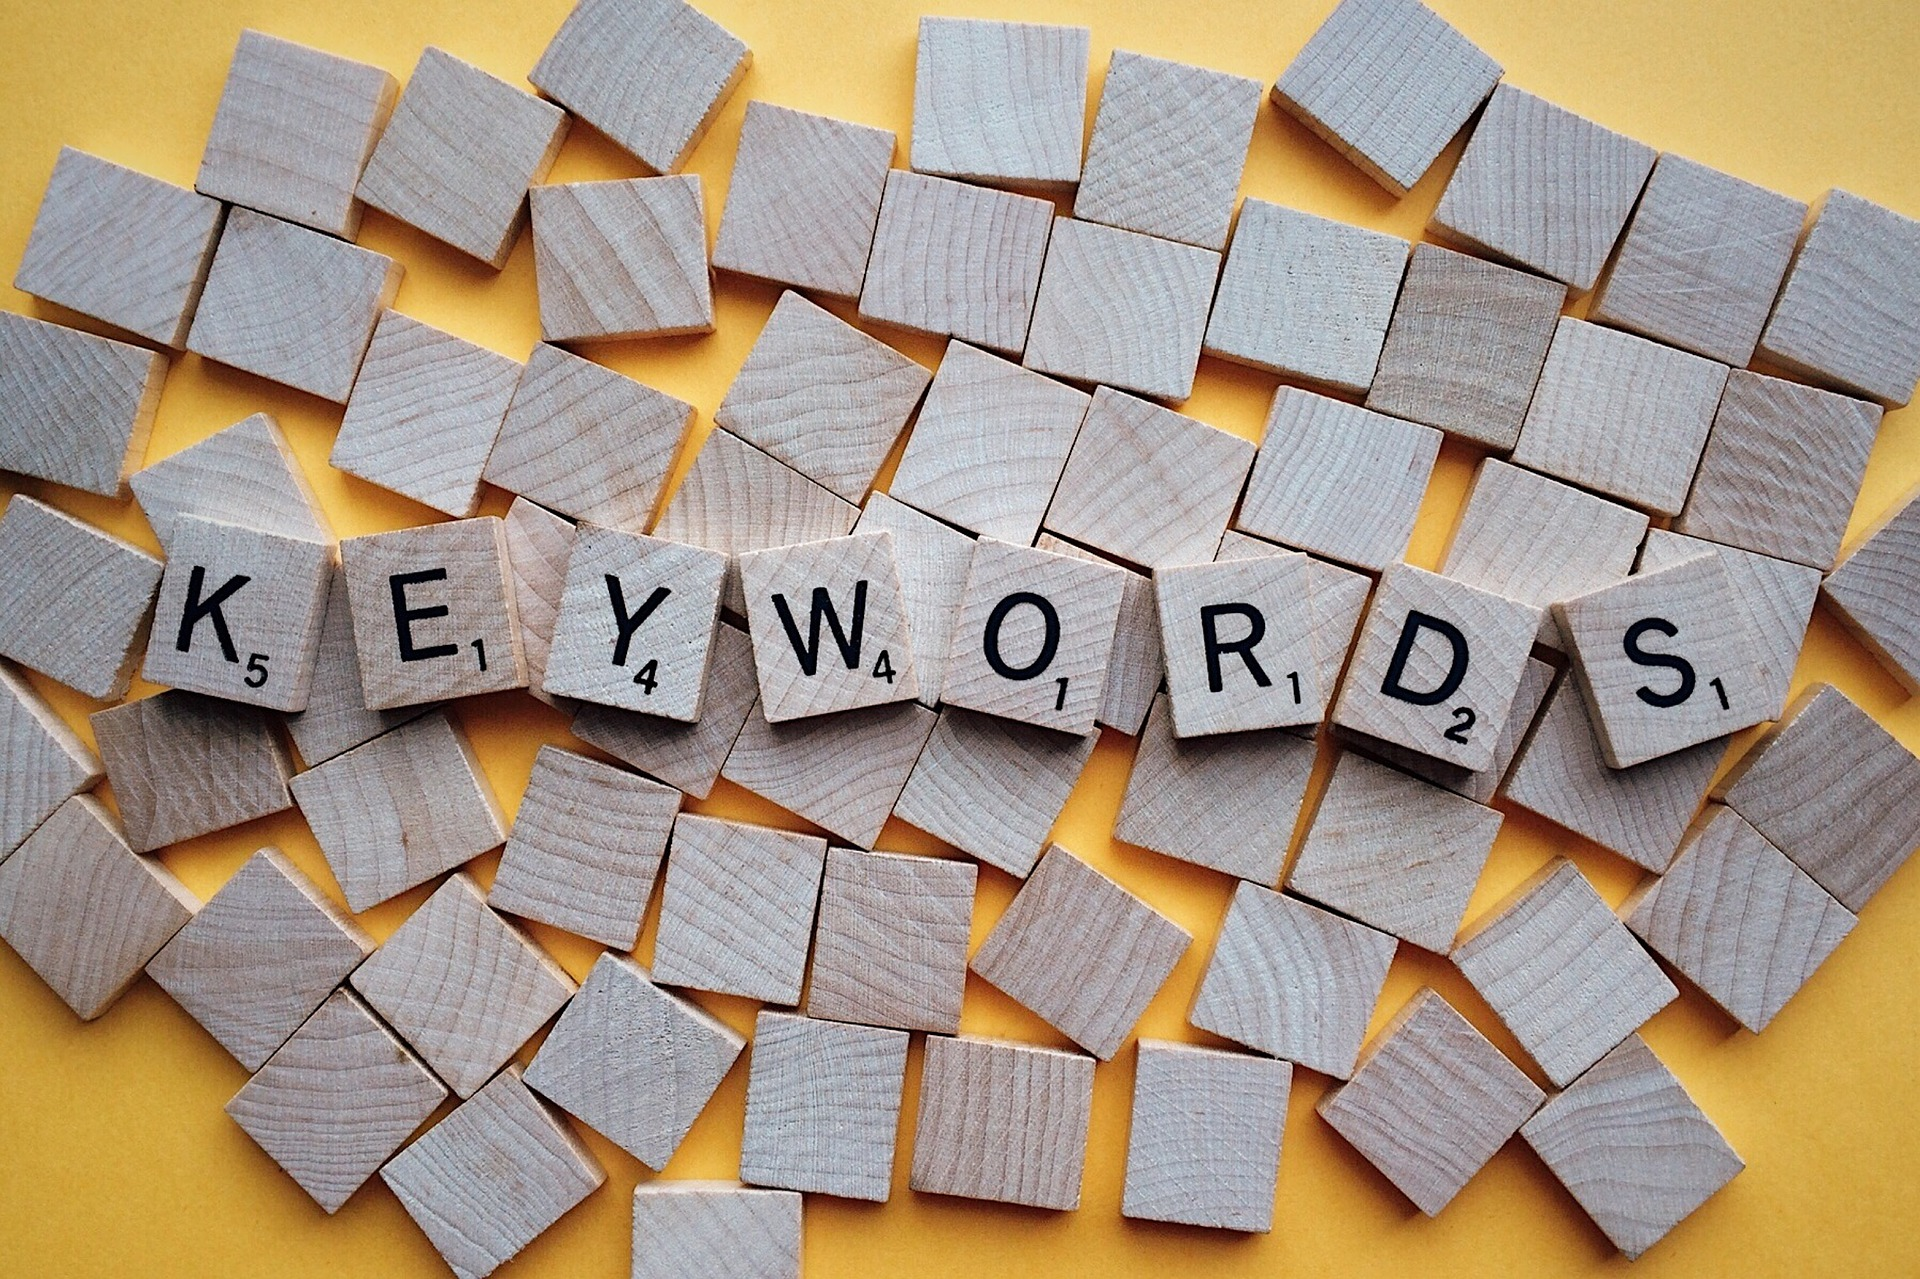 How to Find Keywords for the Website